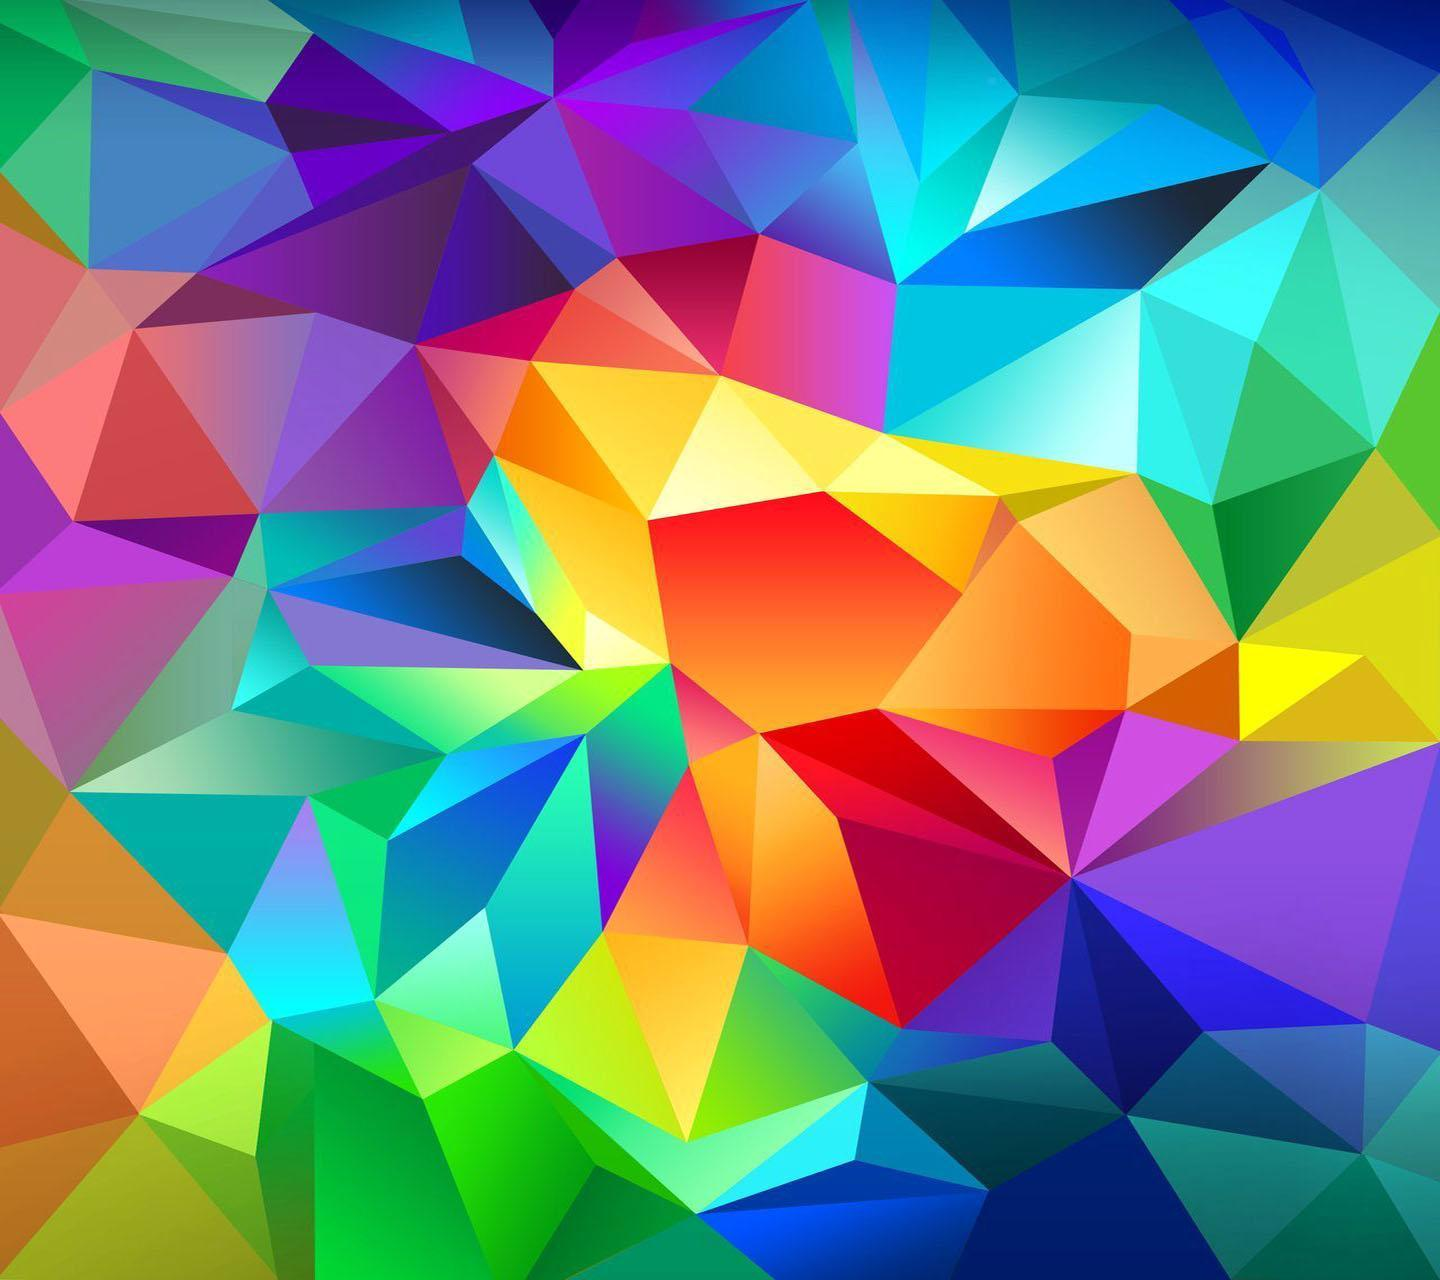 J2,J3,J5,J7 Samsung Wallpapers for Android - APK Download